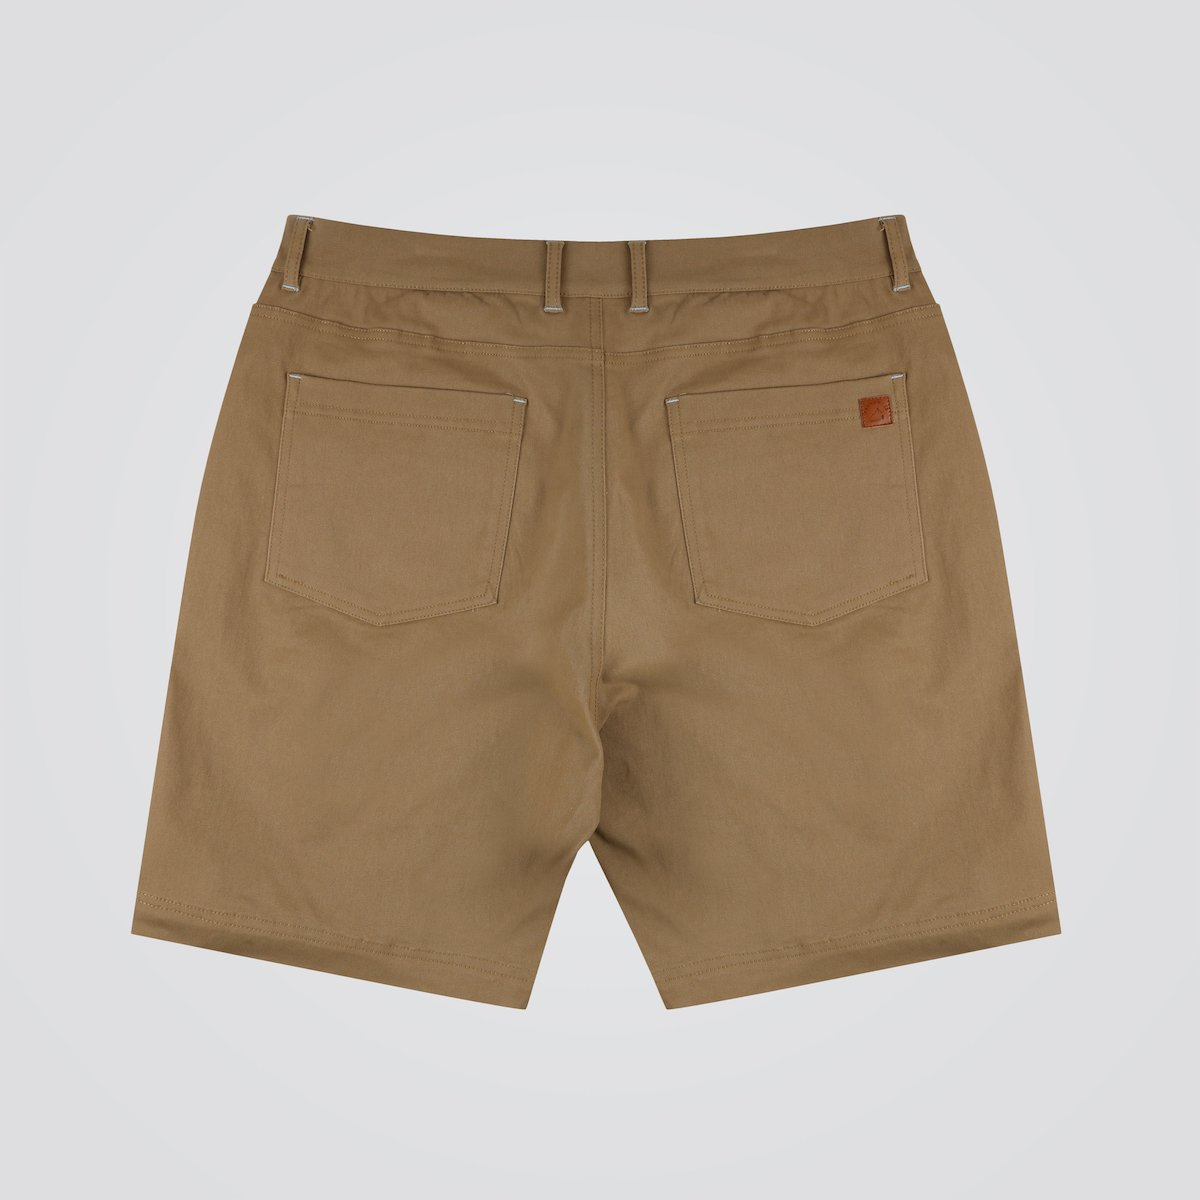 Nomad Short - Burrow Brown image 5